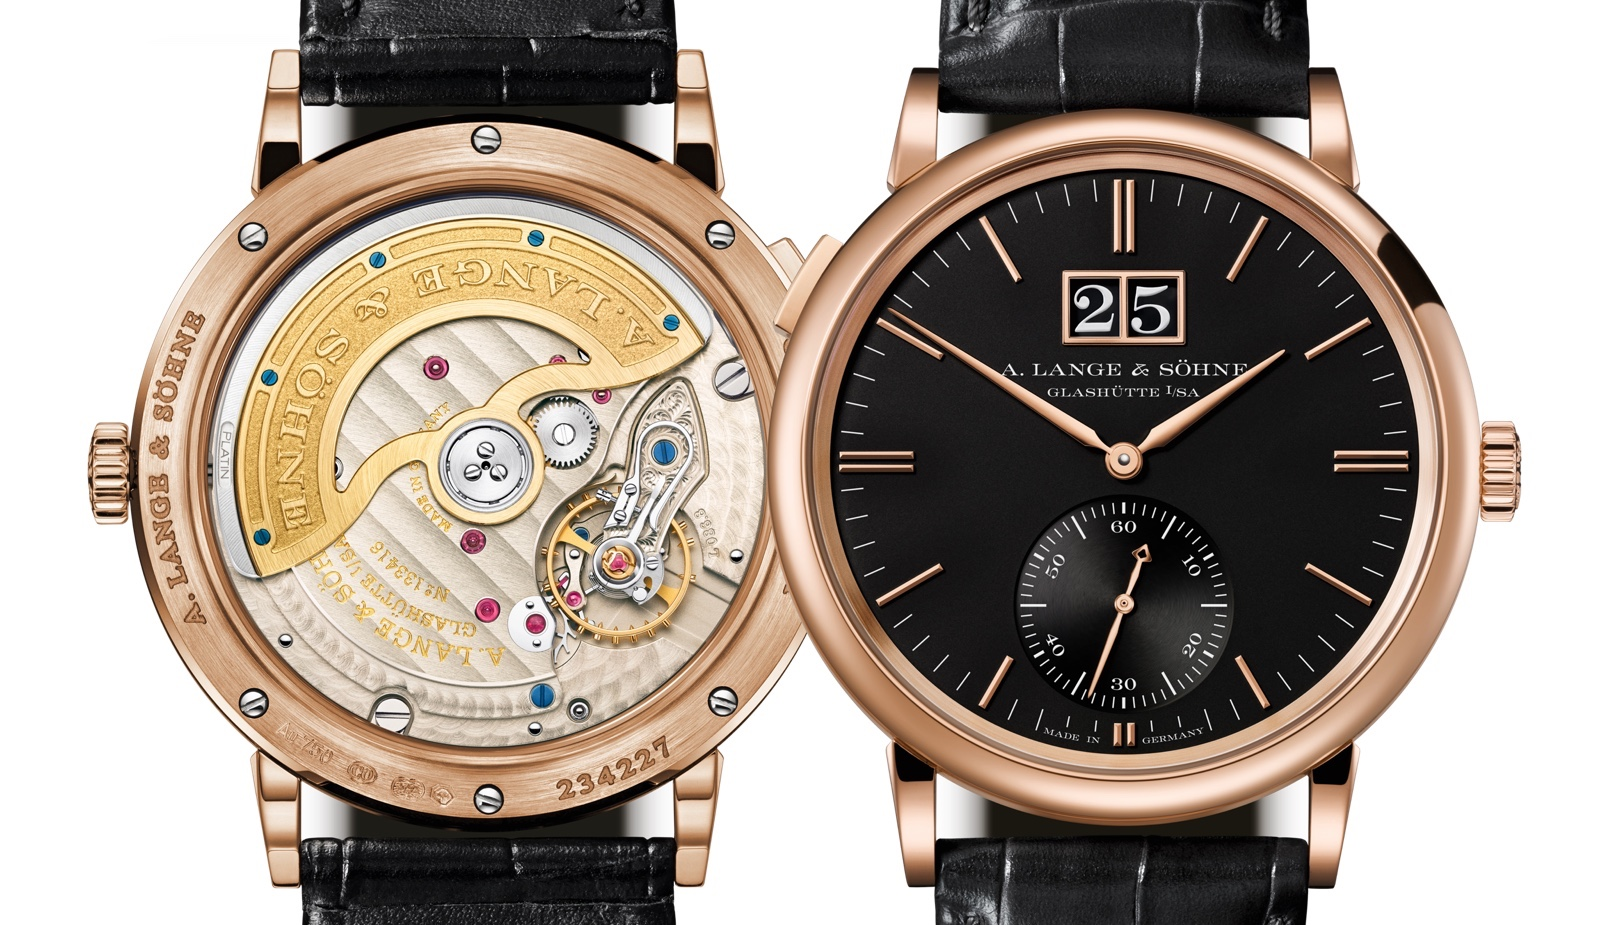 A. Lange & Sohne Saxonia Outsize Date Red Gold